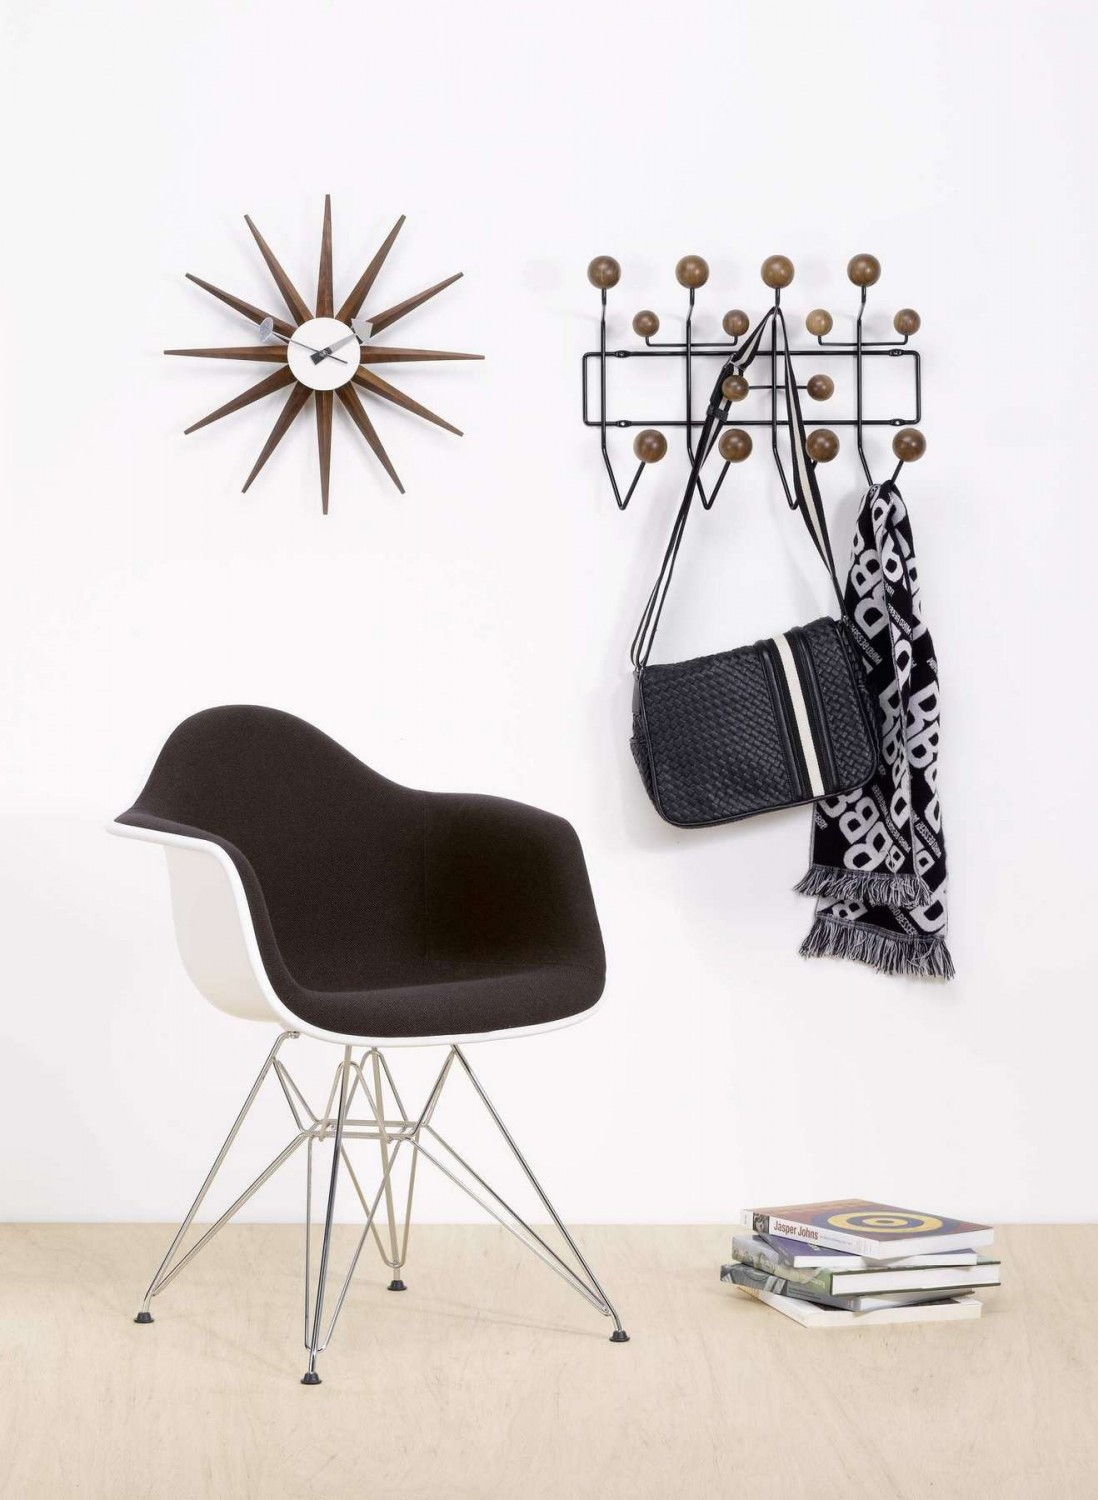 eames elephant charles ray eames 1945. Black Bedroom Furniture Sets. Home Design Ideas